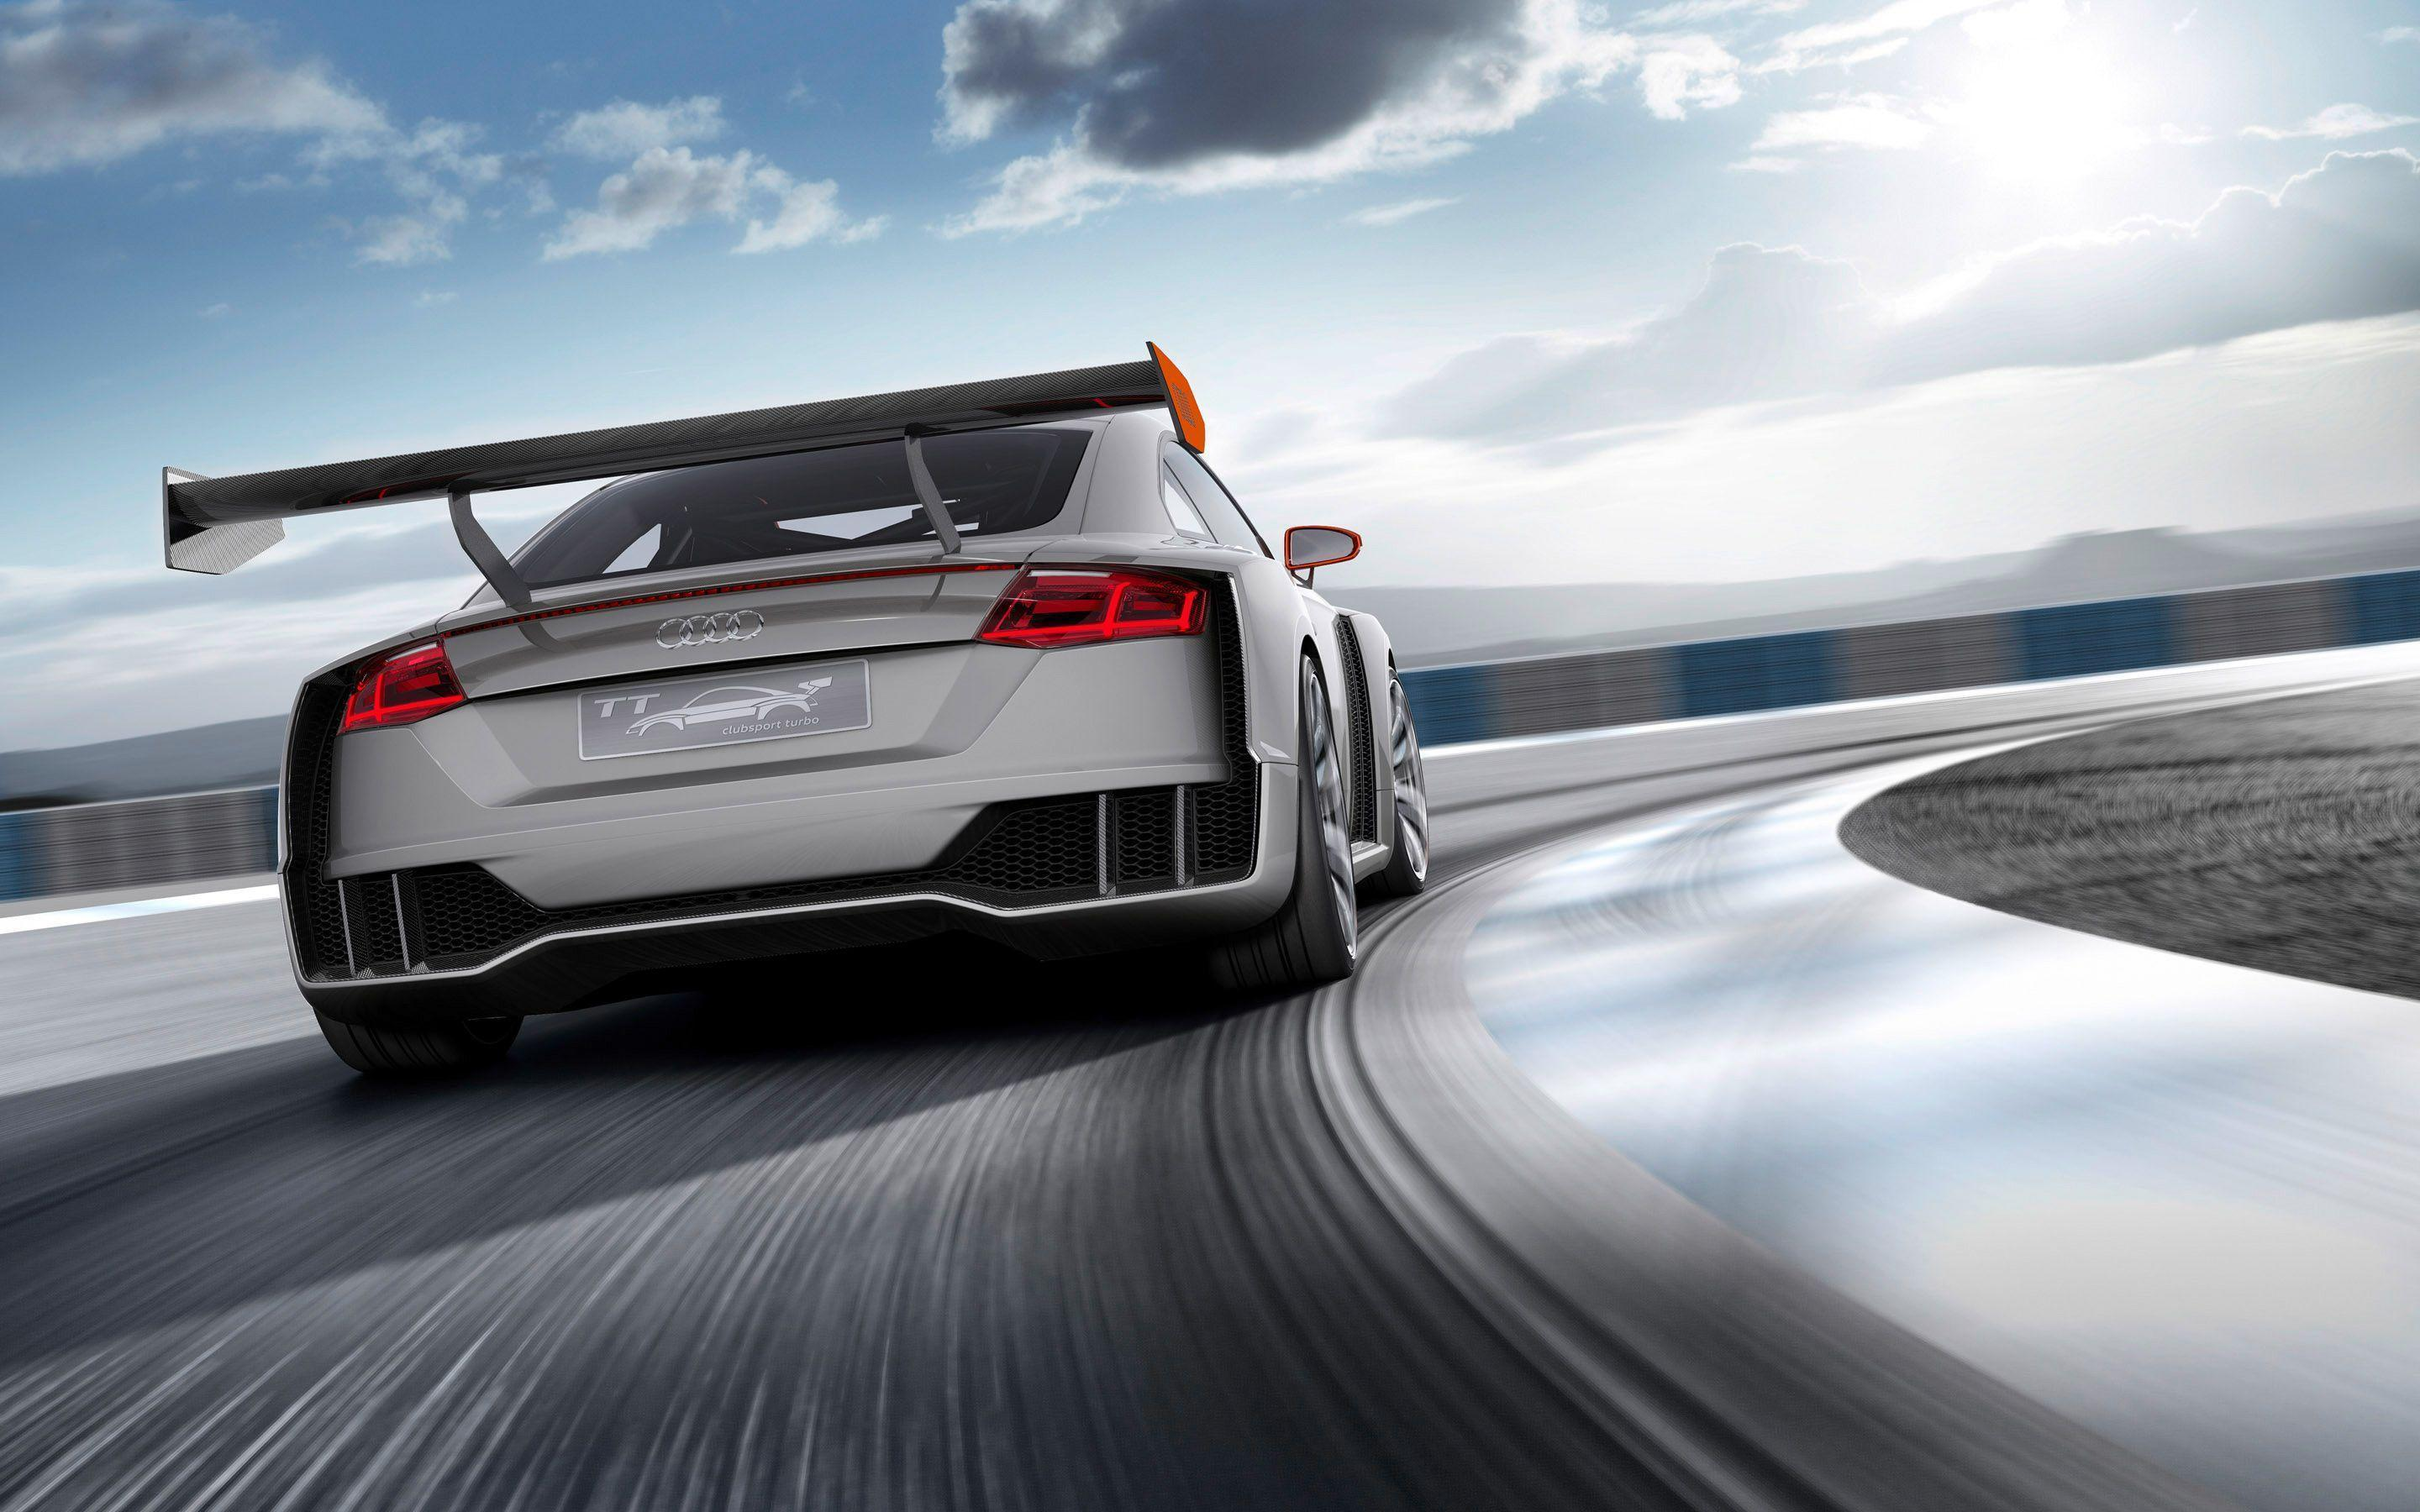 Audi Wallpaper free download | HD Wallpapers, Backgrounds, Images ...